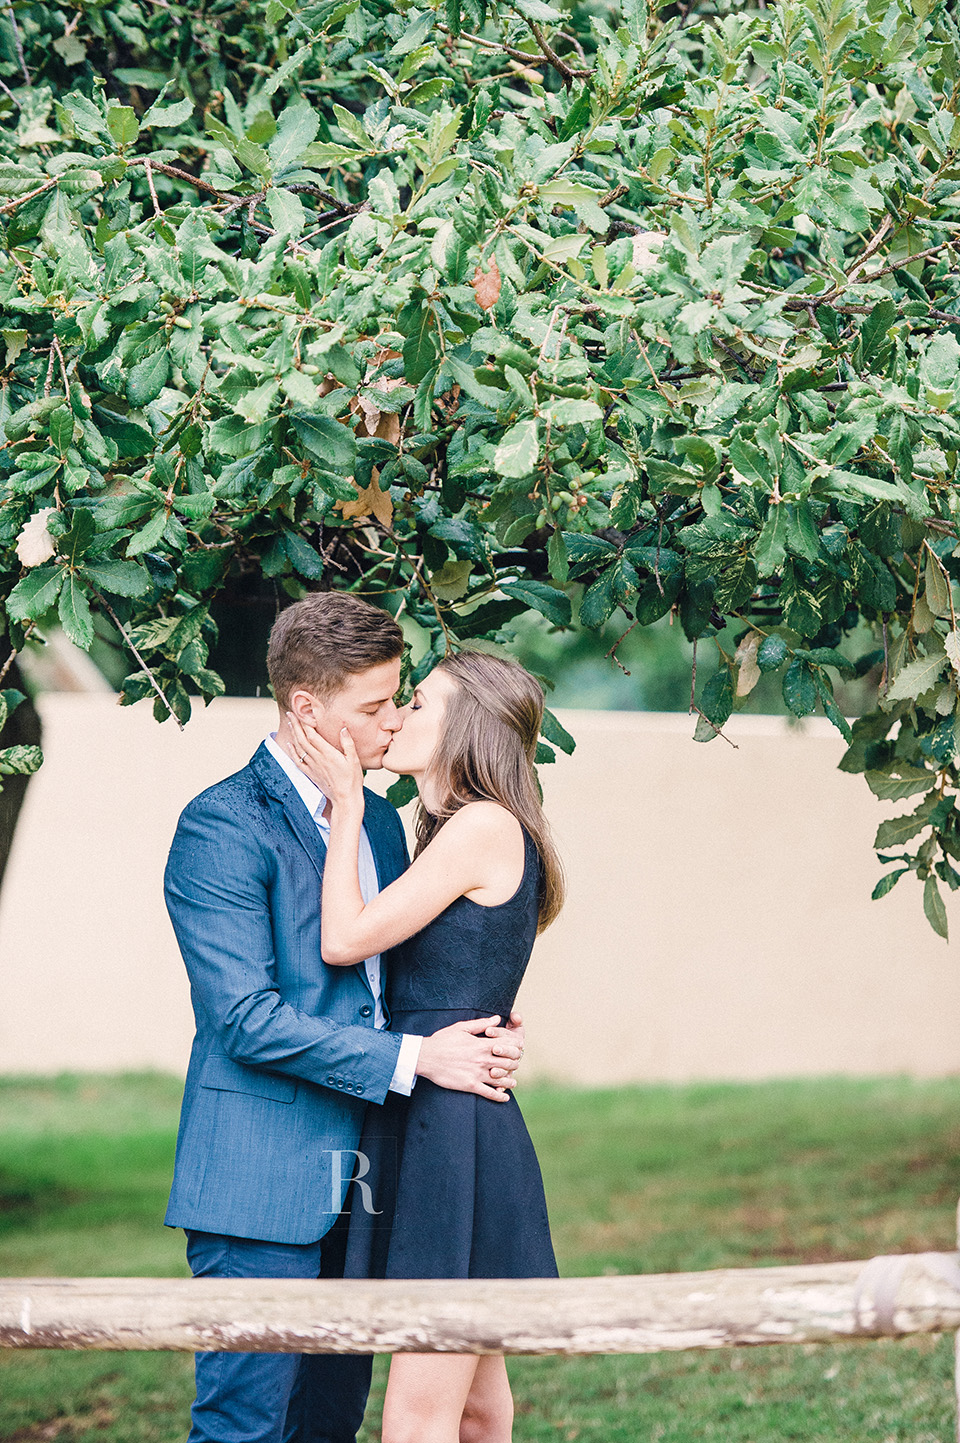 RYAN PARKER_WEDDING PHOTOGRAPHER_COUPLE SESSION_SOUTH AFRICA_JOHANNESBURG_D&M-0594.jpg